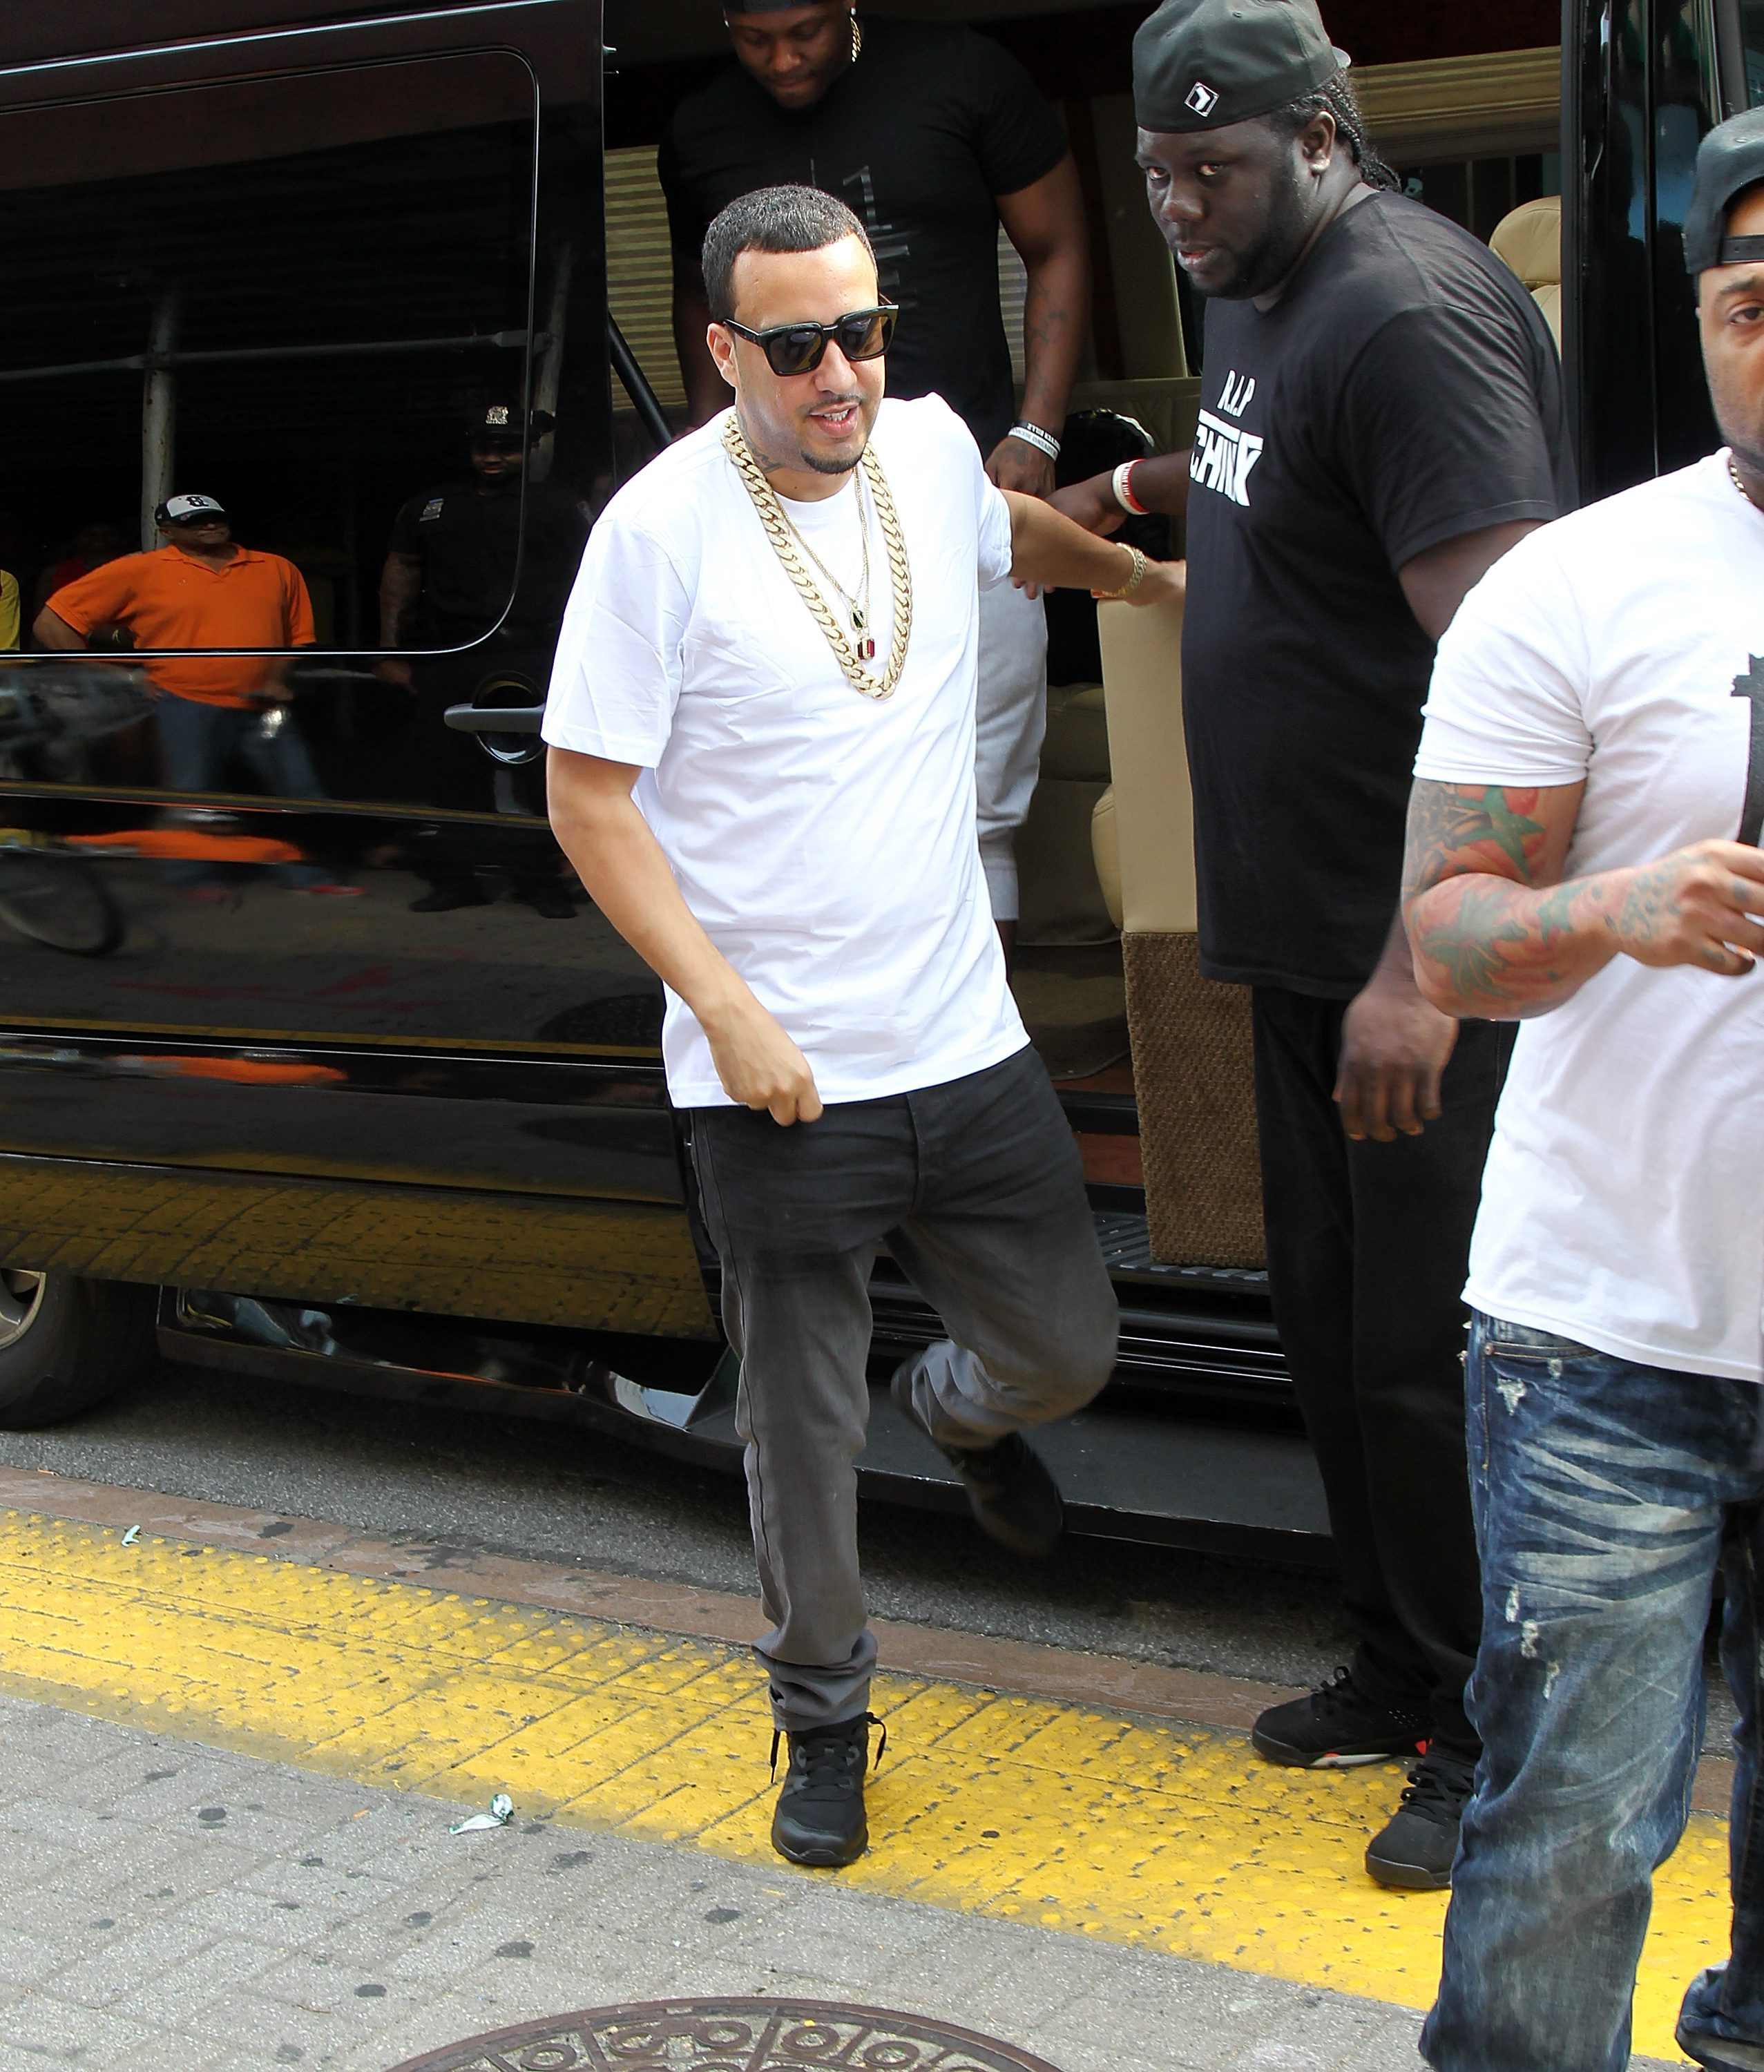 NEW YORK, NY - AUGUST 30:  French Montana launches Ventilator ST at Jimmy Jazz in Harlem on August 30, 2015 in New York City.  (Photo by Bennett Raglin/Getty Images for Reebok)